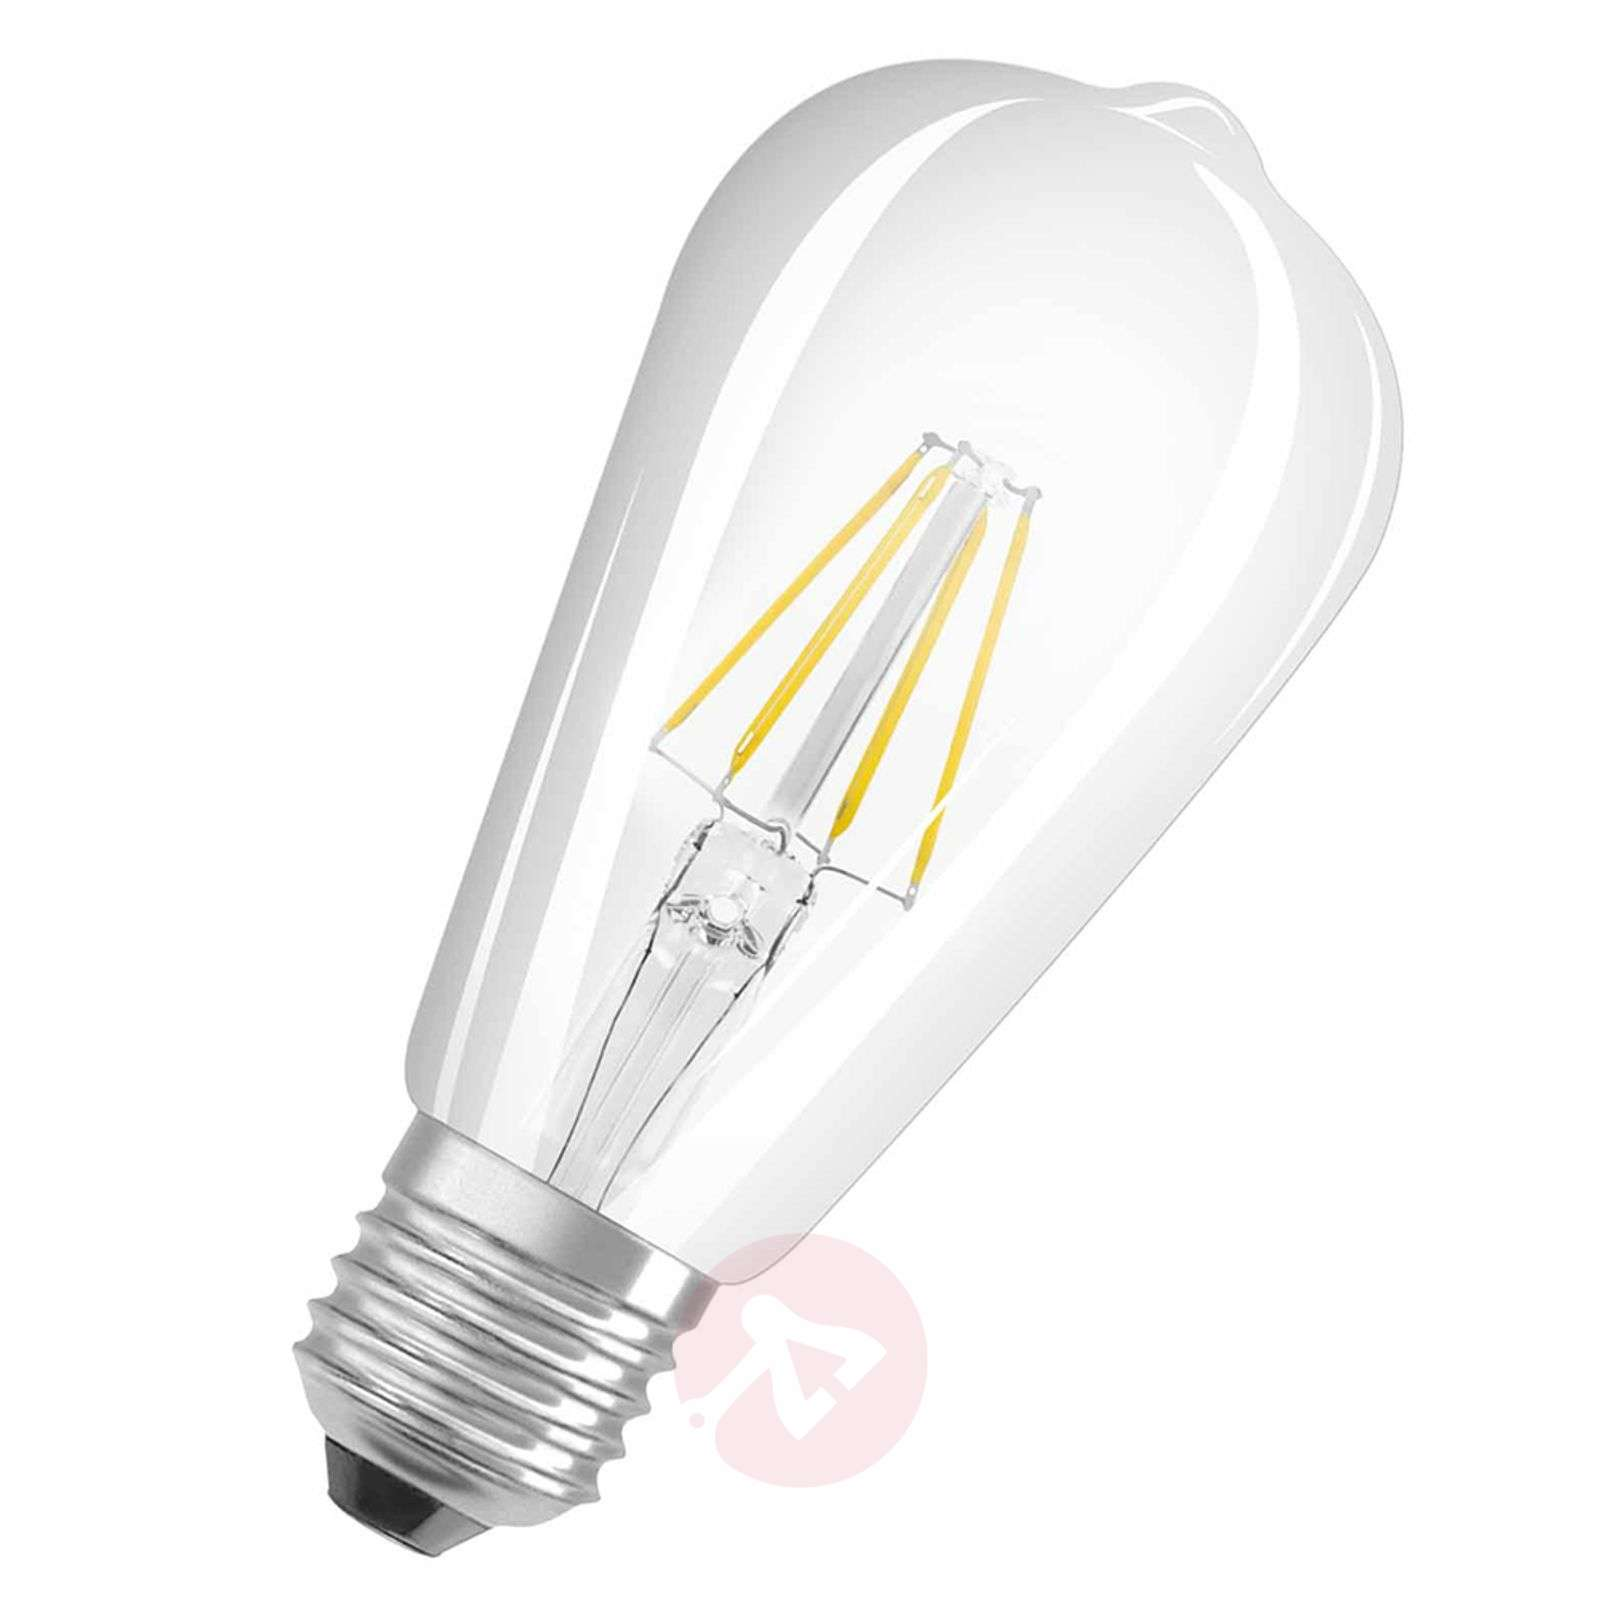 E27 7 W 827 retrofit LED rustic bulb clear-7260861-01